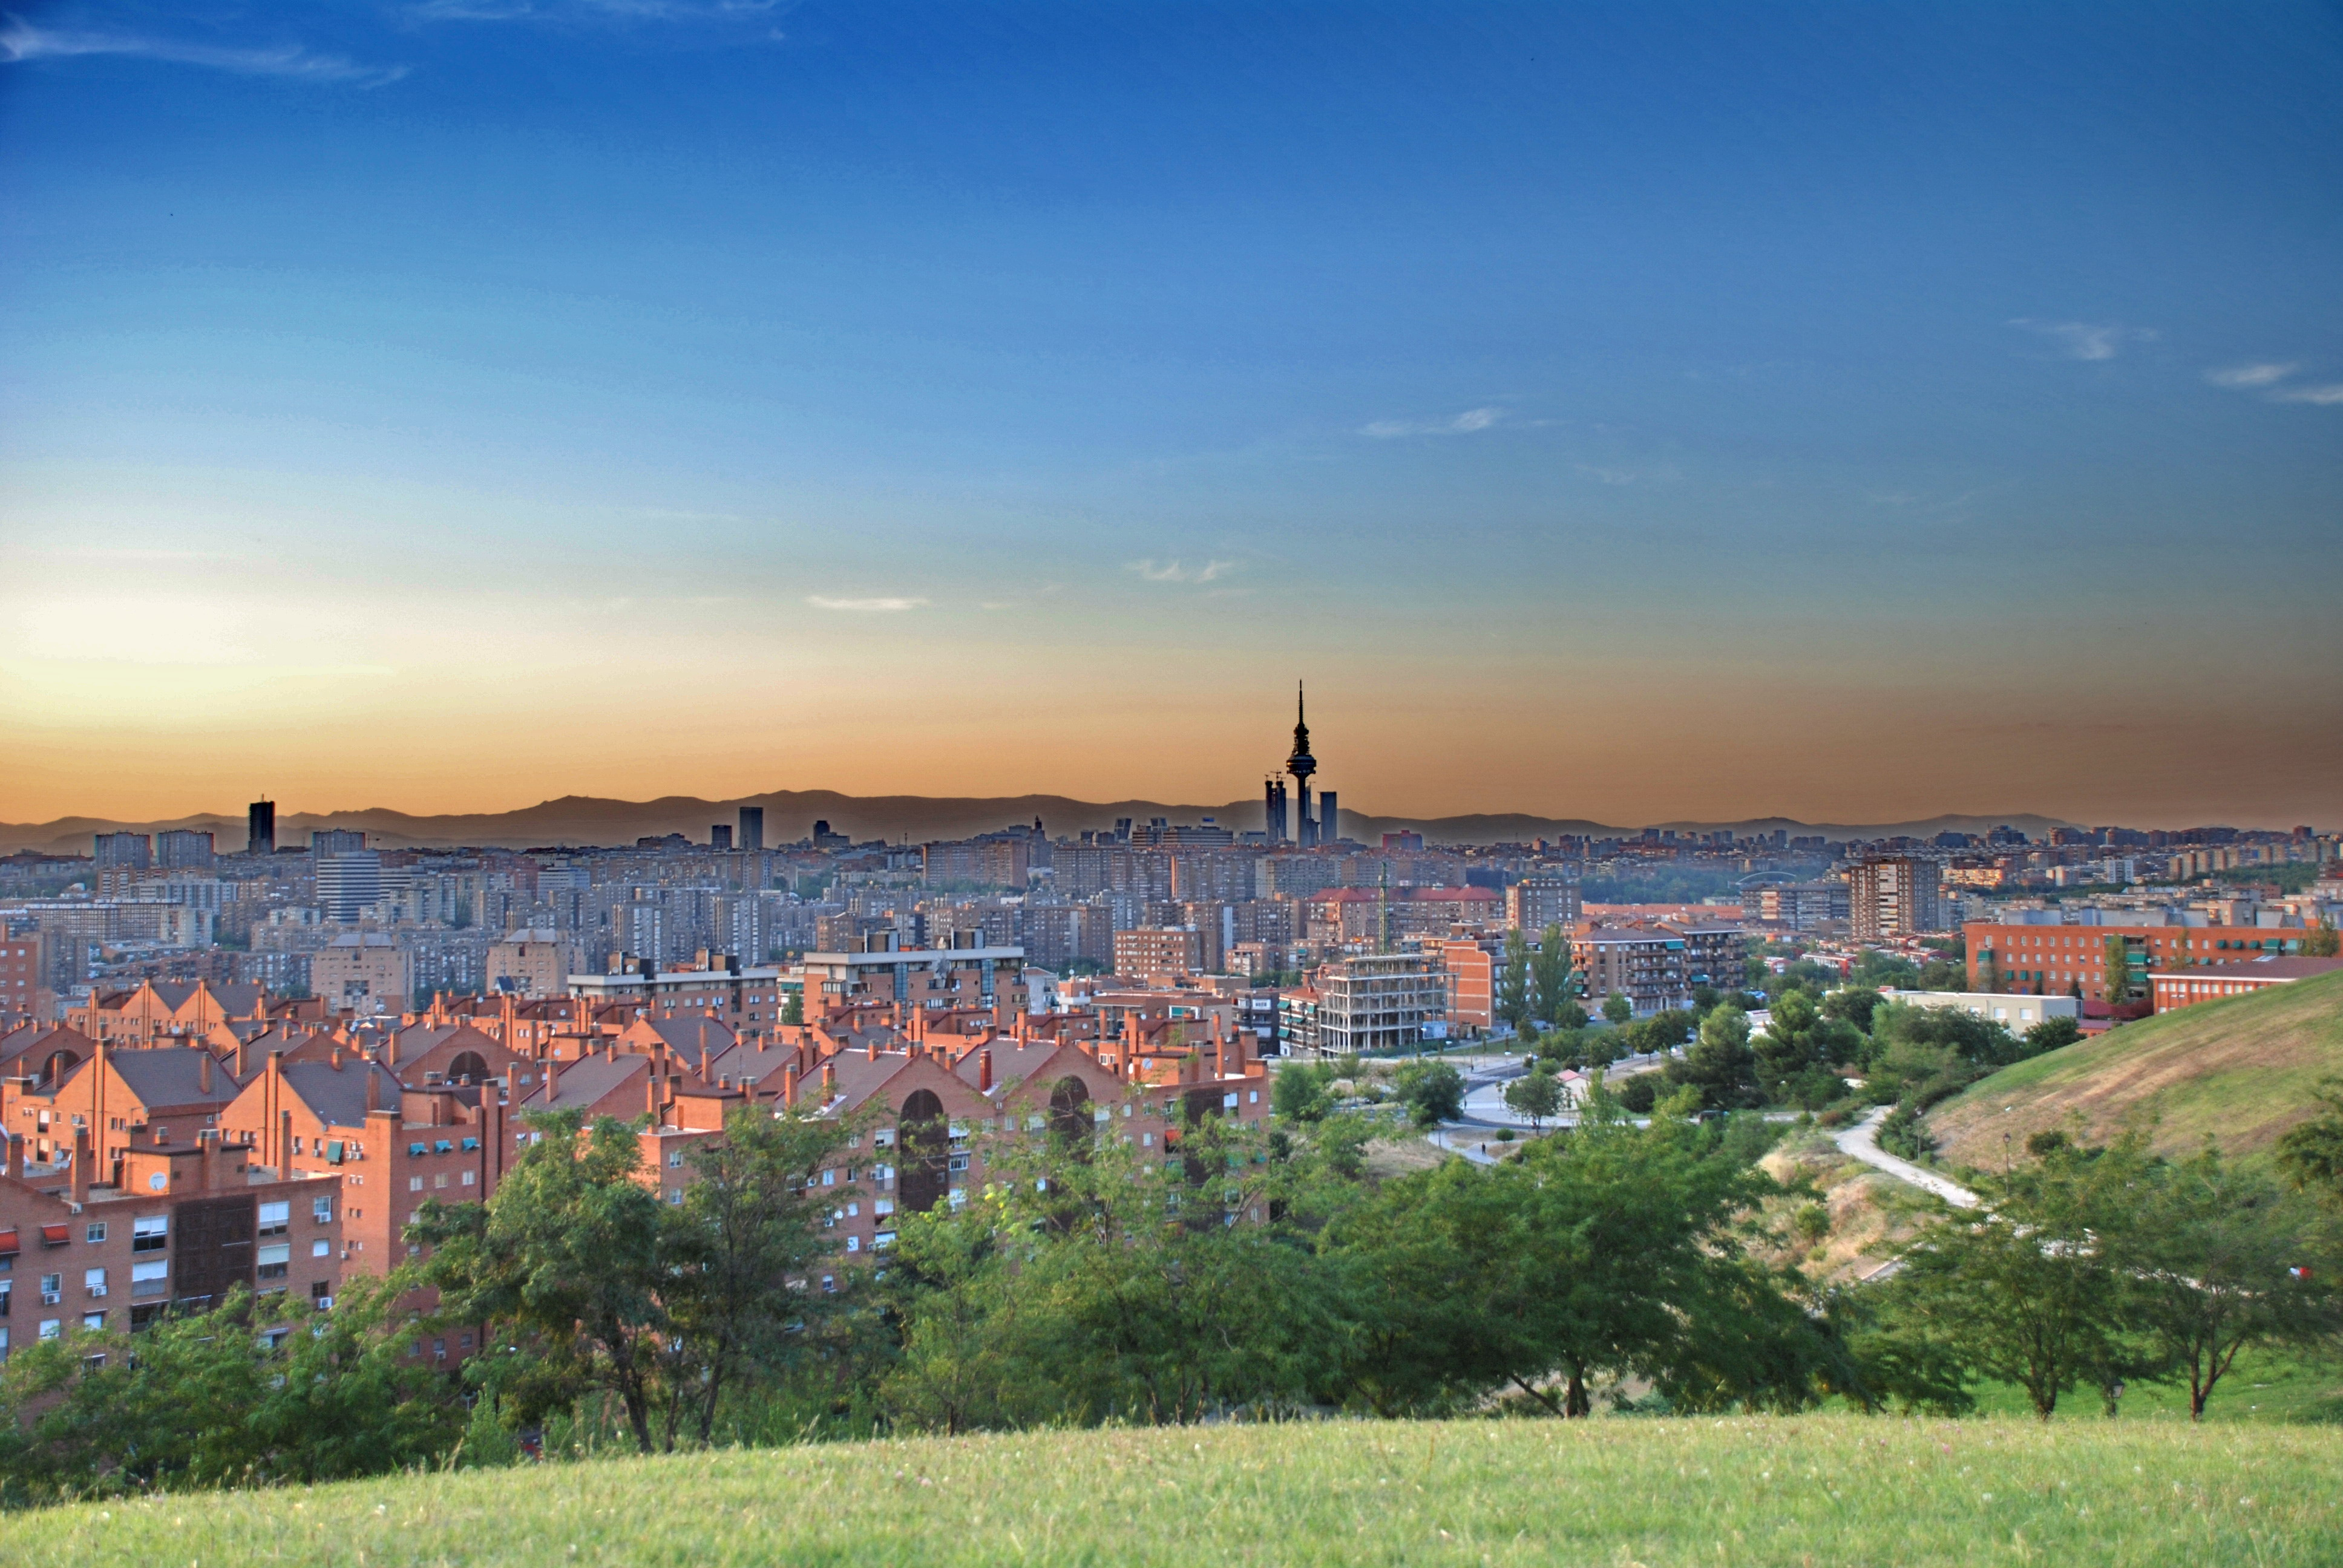 madrid_skyline_-_cerro_del_tc3ado_pc3ado